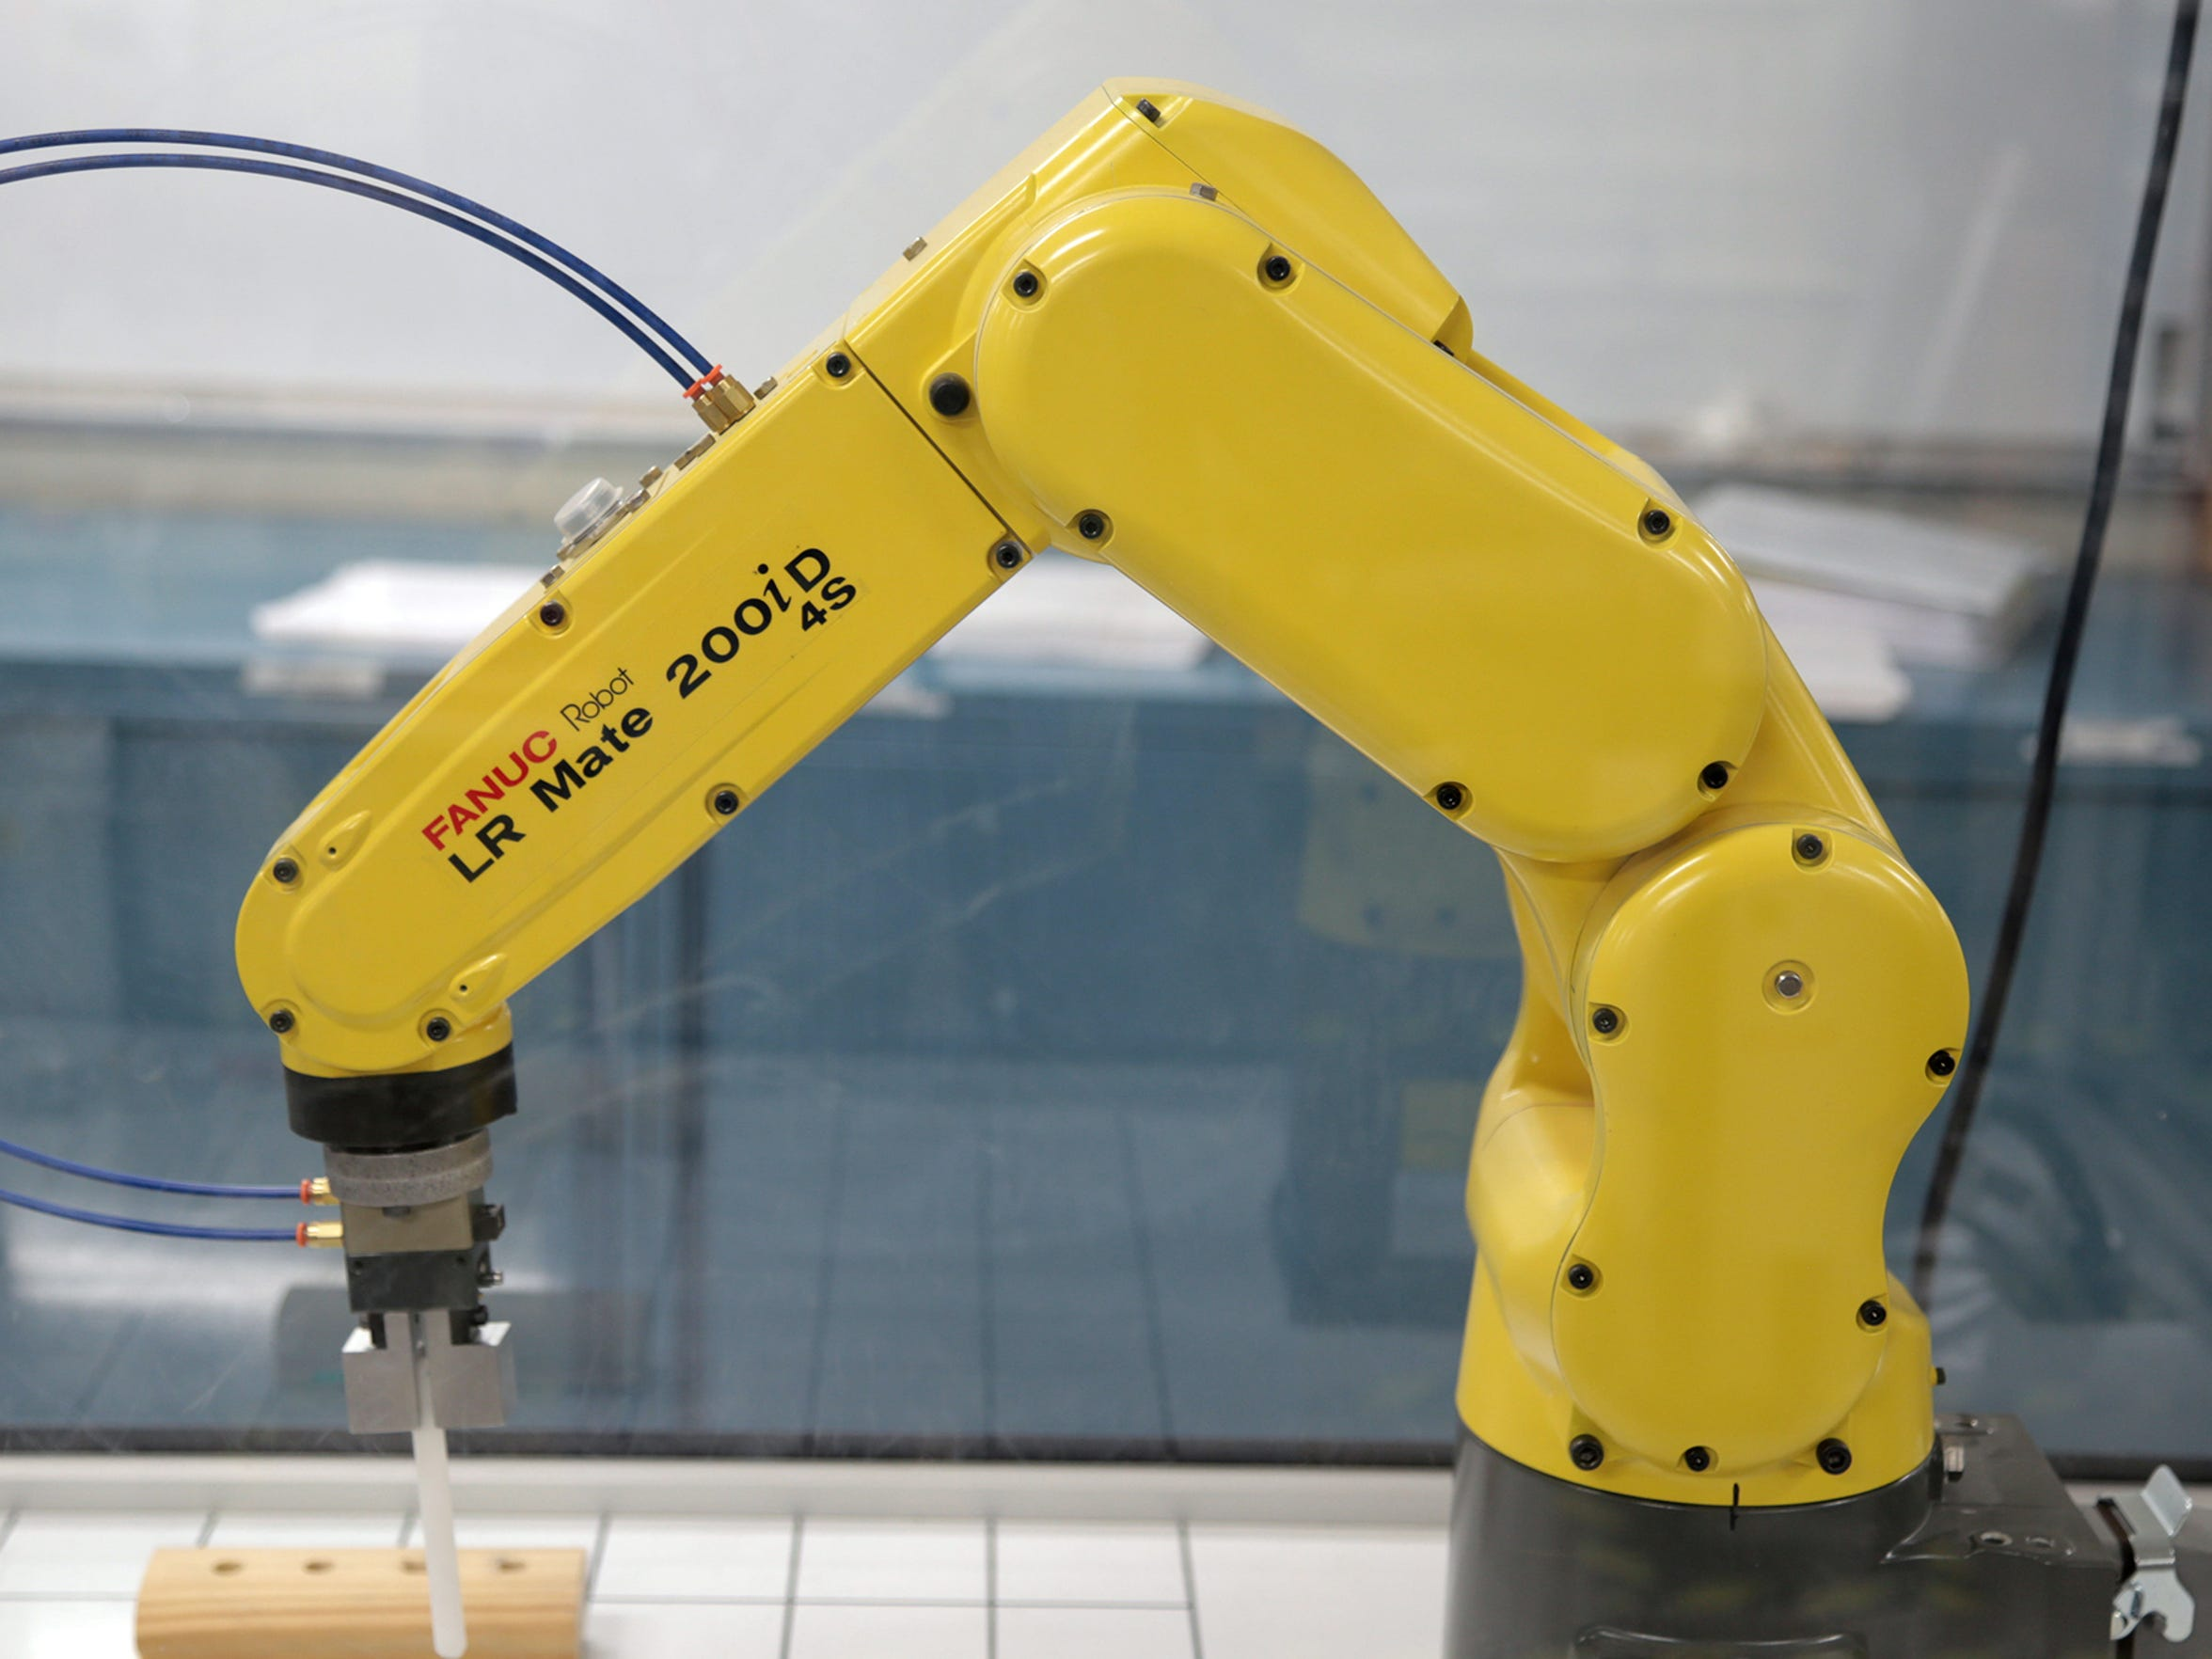 A FANUC robot at Truckee Meadows Community College's